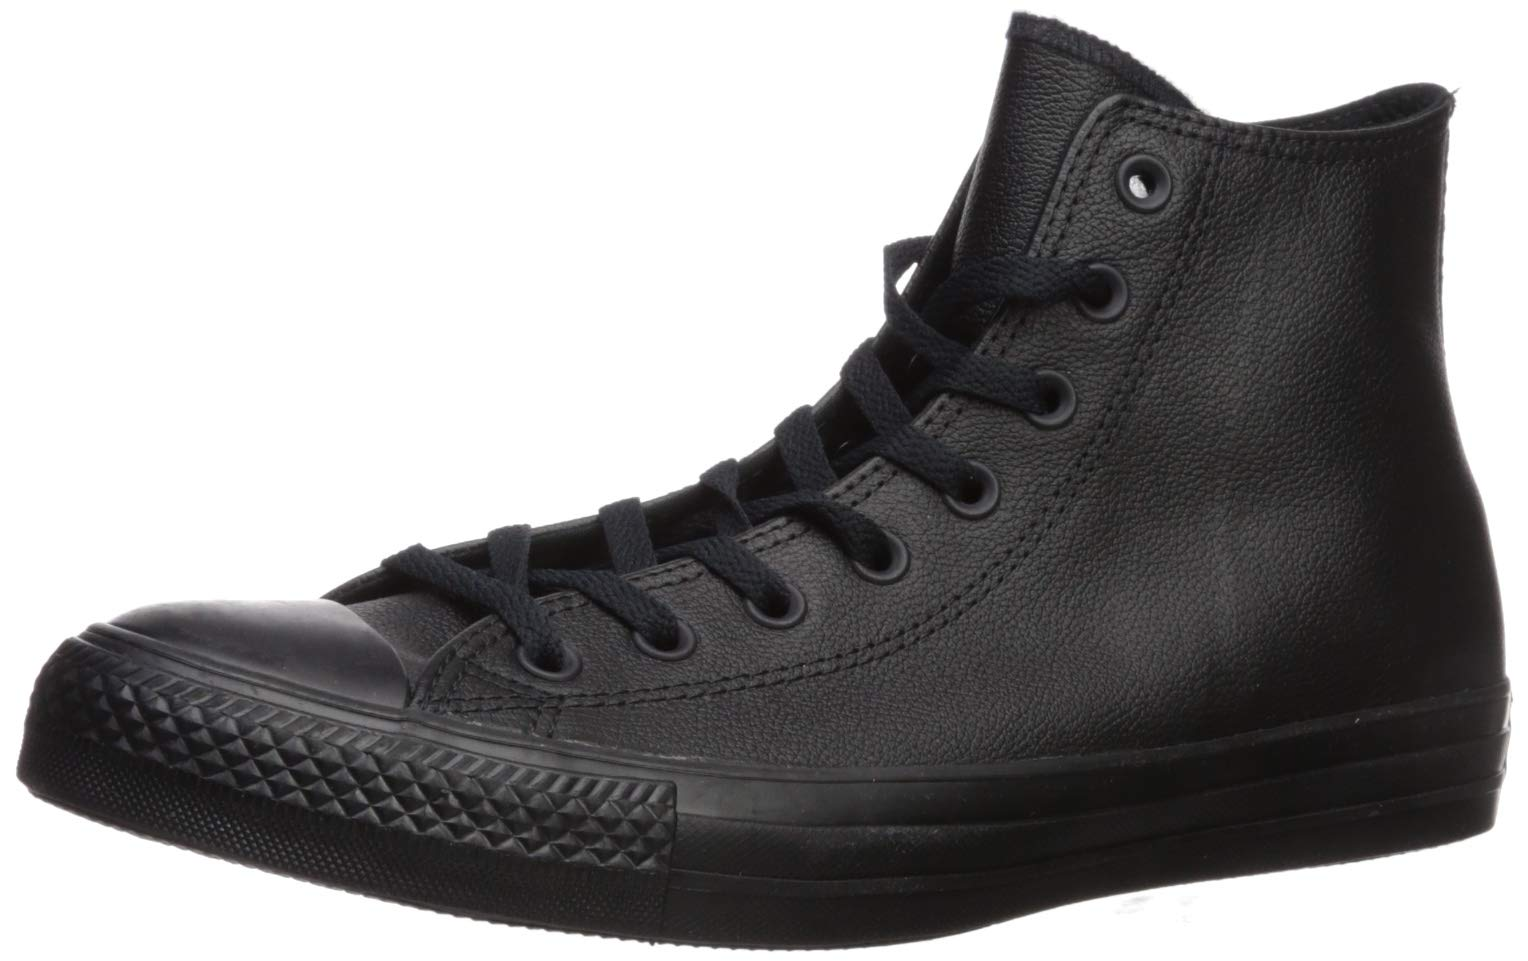 Converse Chuck Taylor All Star Leather High Top Sneaker, Black Mono, 10.5 M US by Converse